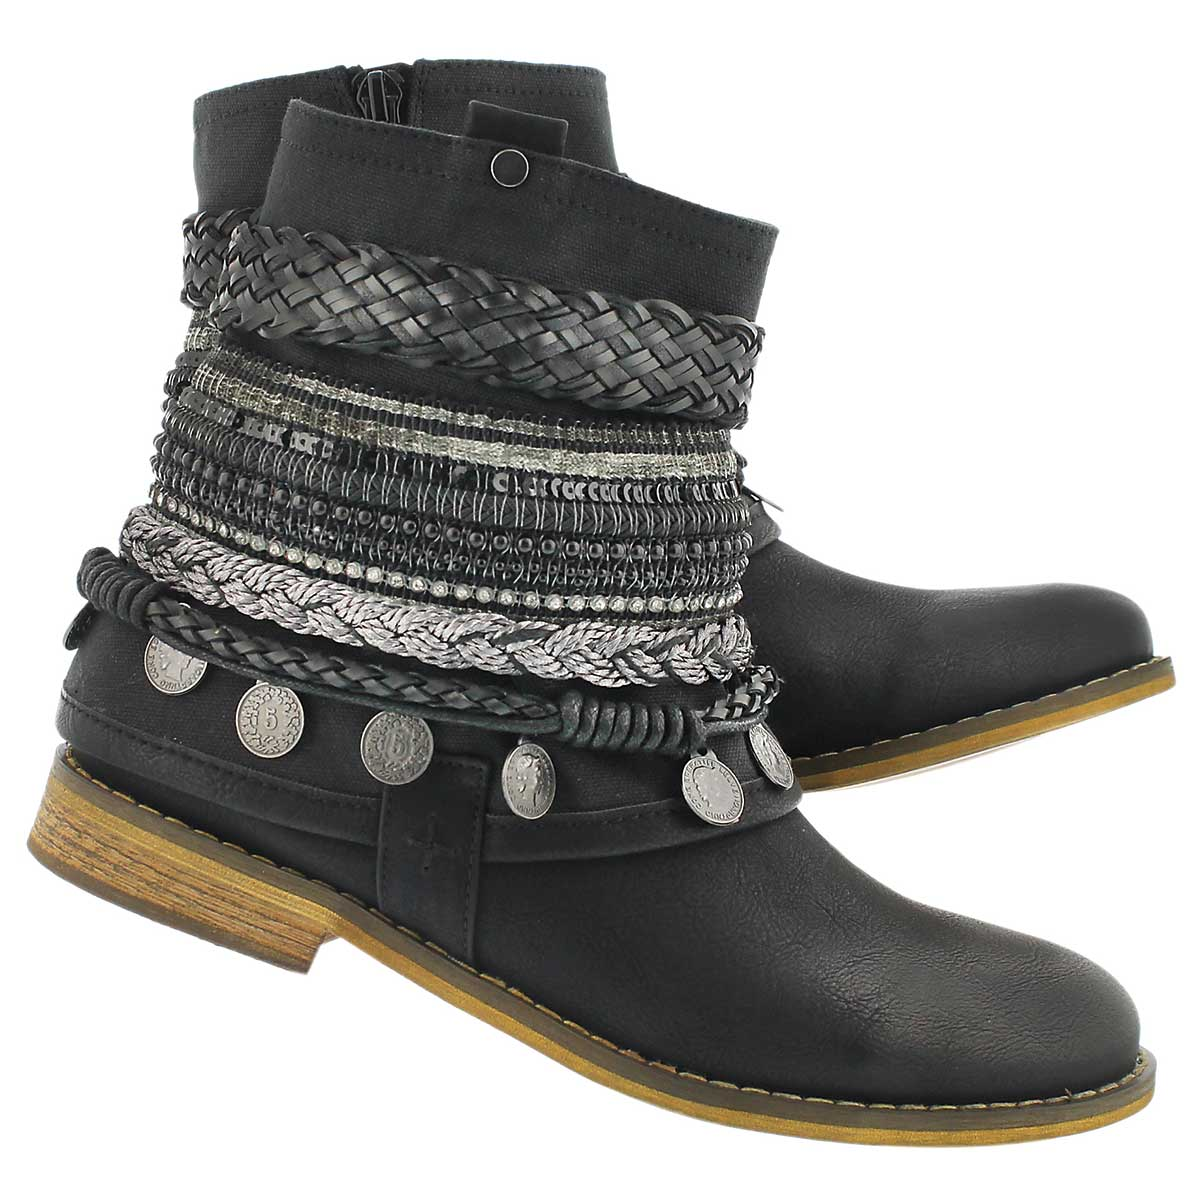 Lds Breanne black braided ankle boot